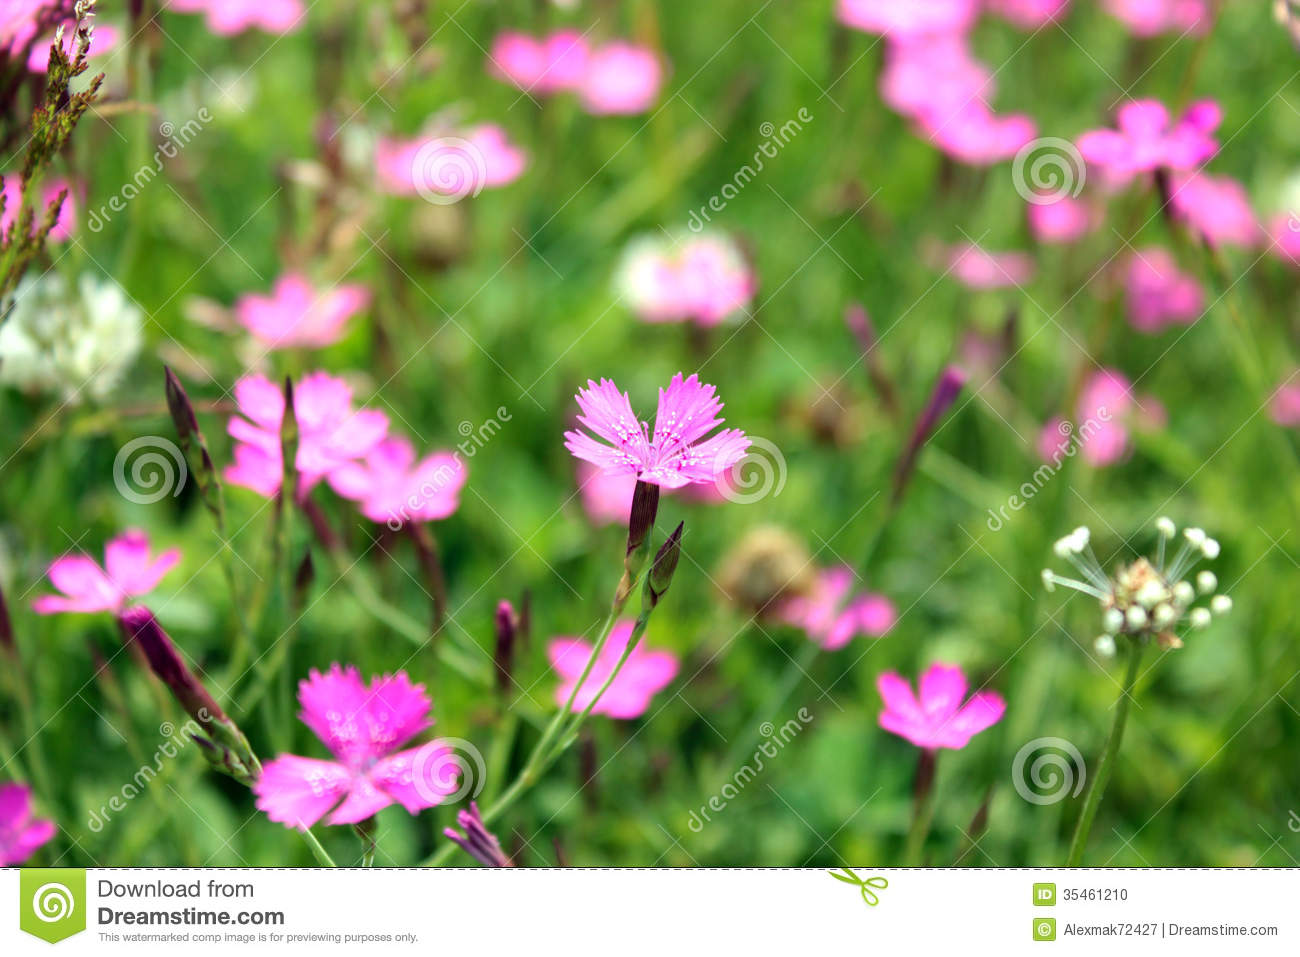 Birthday Background Pink Flower Of Red Wild Carnation Stock Photo - Image: 35461210